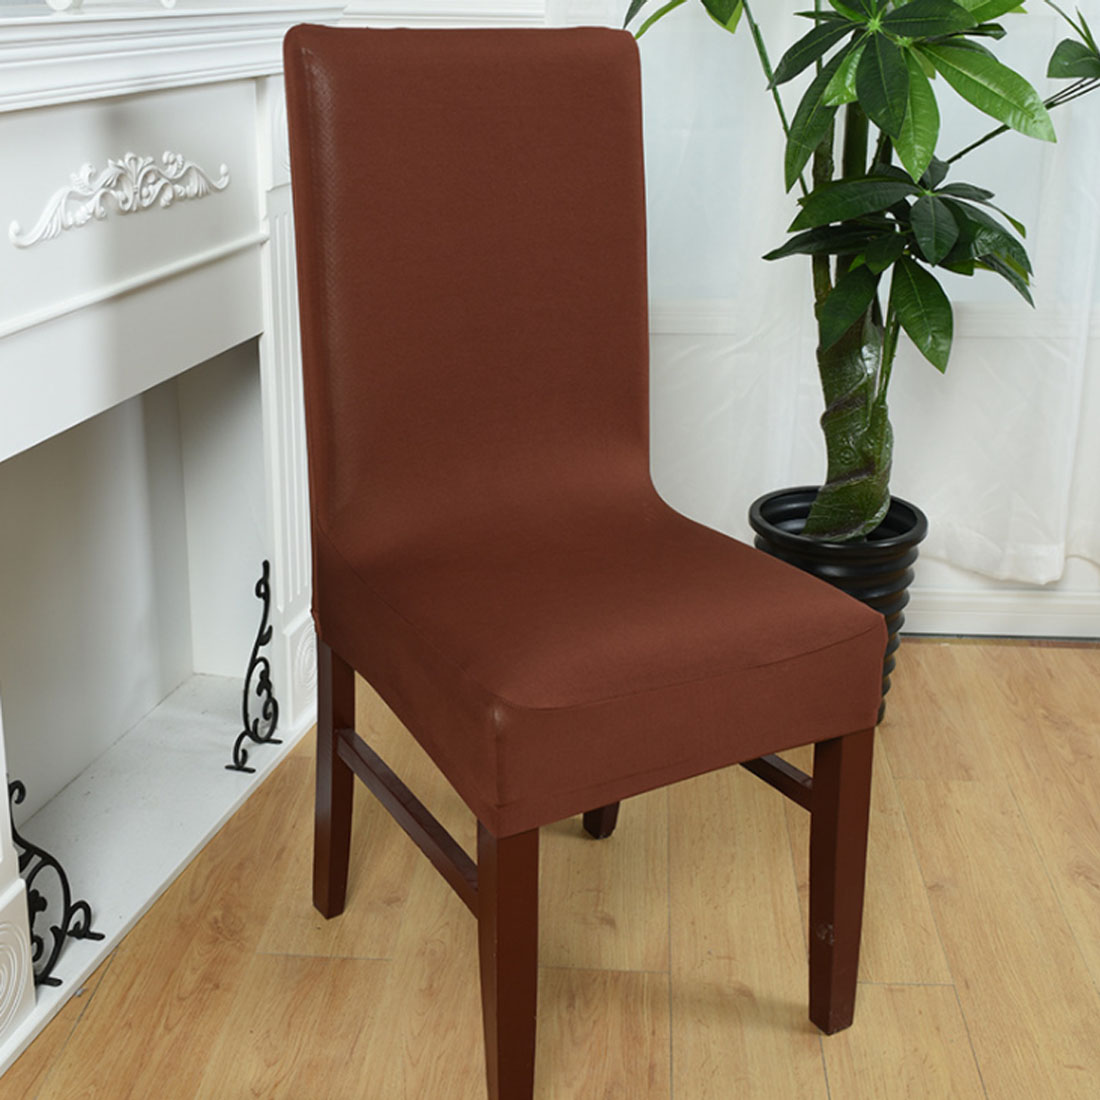 Sillas Comedor Spandex Strech Office Chair Covers Protector ...